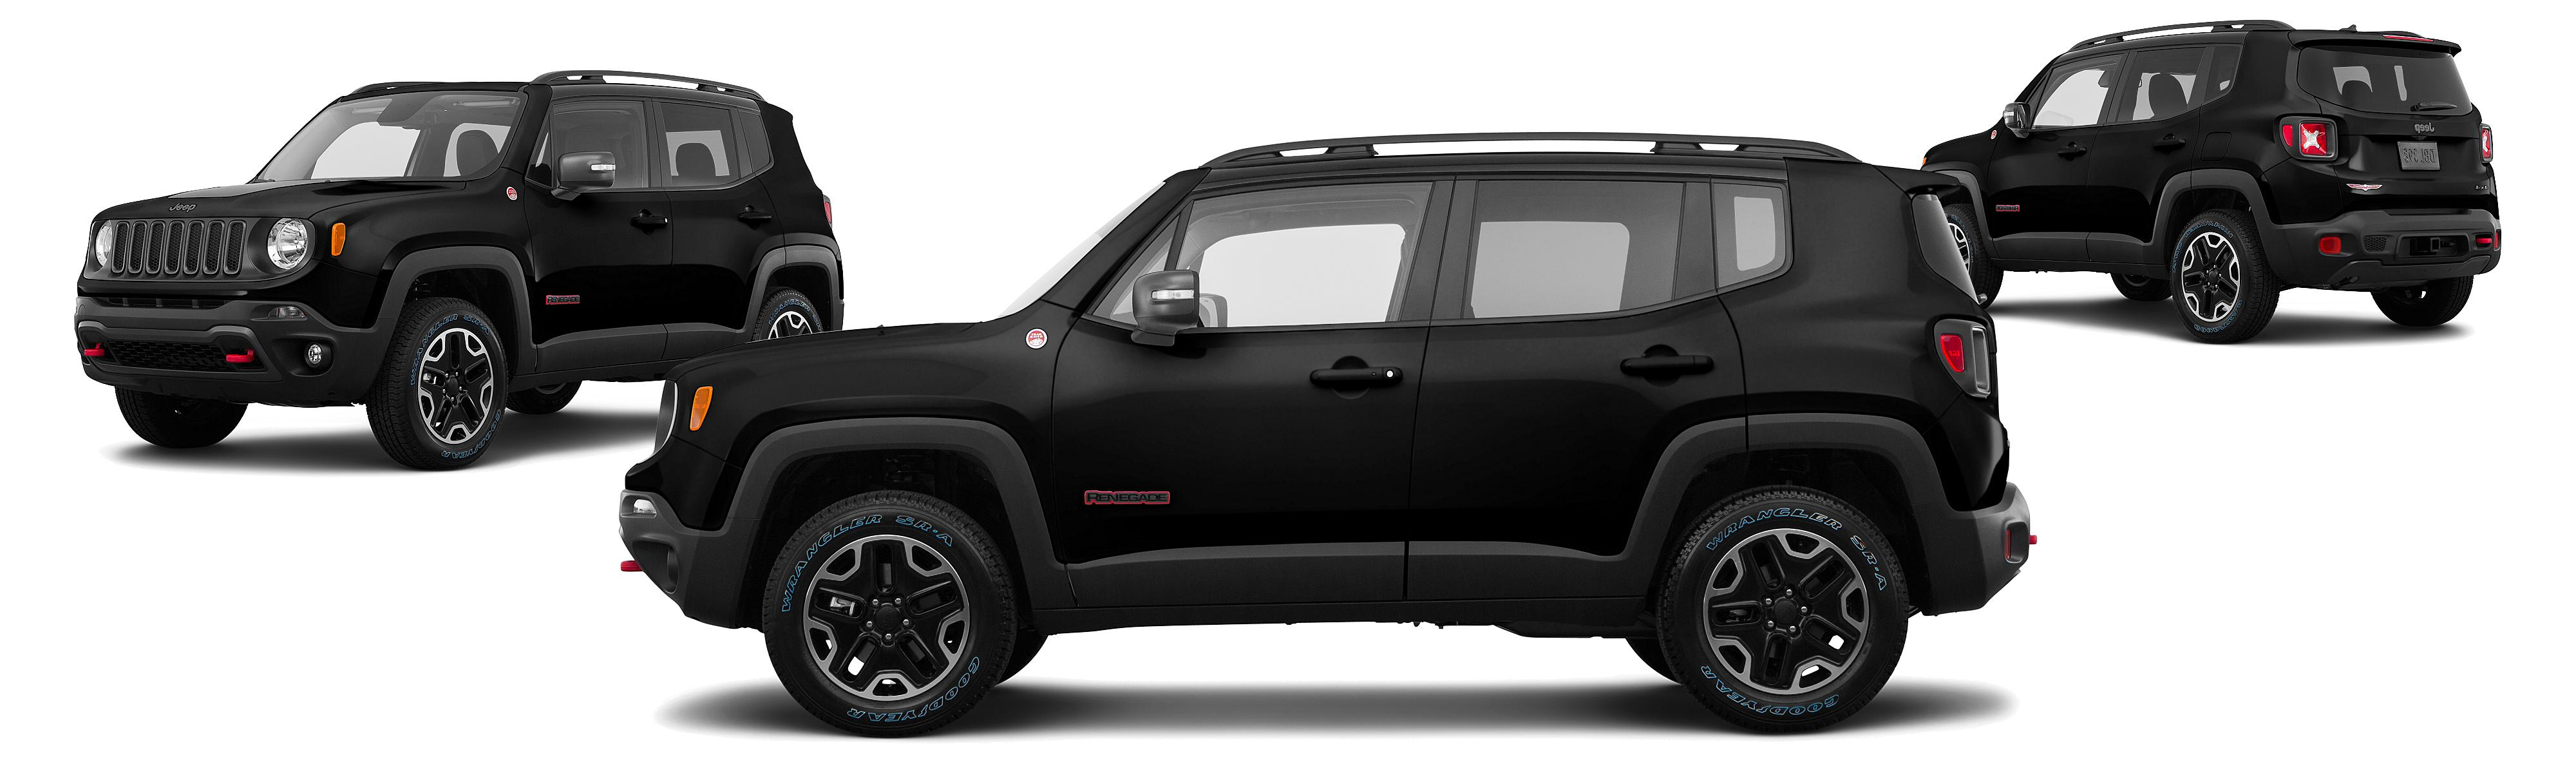 jeep renegade carbon black galleria di automobili. Black Bedroom Furniture Sets. Home Design Ideas